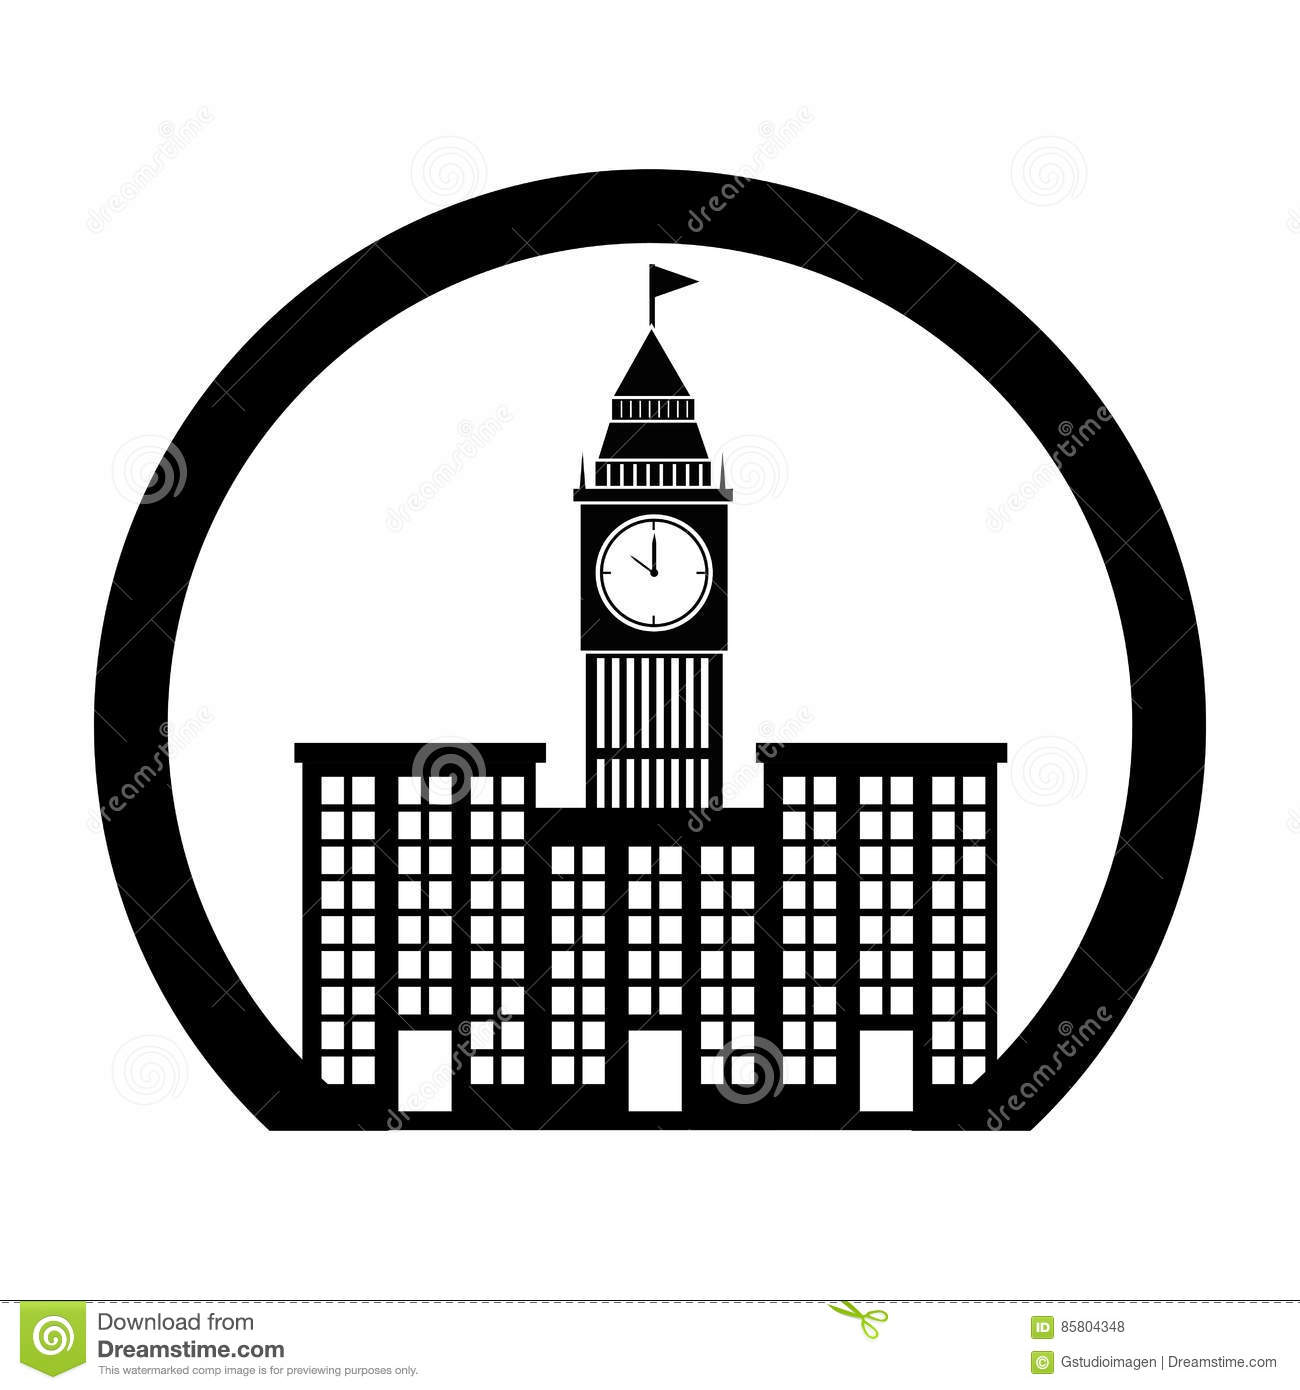 Monochrome Circle Contour With Buildings And Elizabeth Tower Stock.